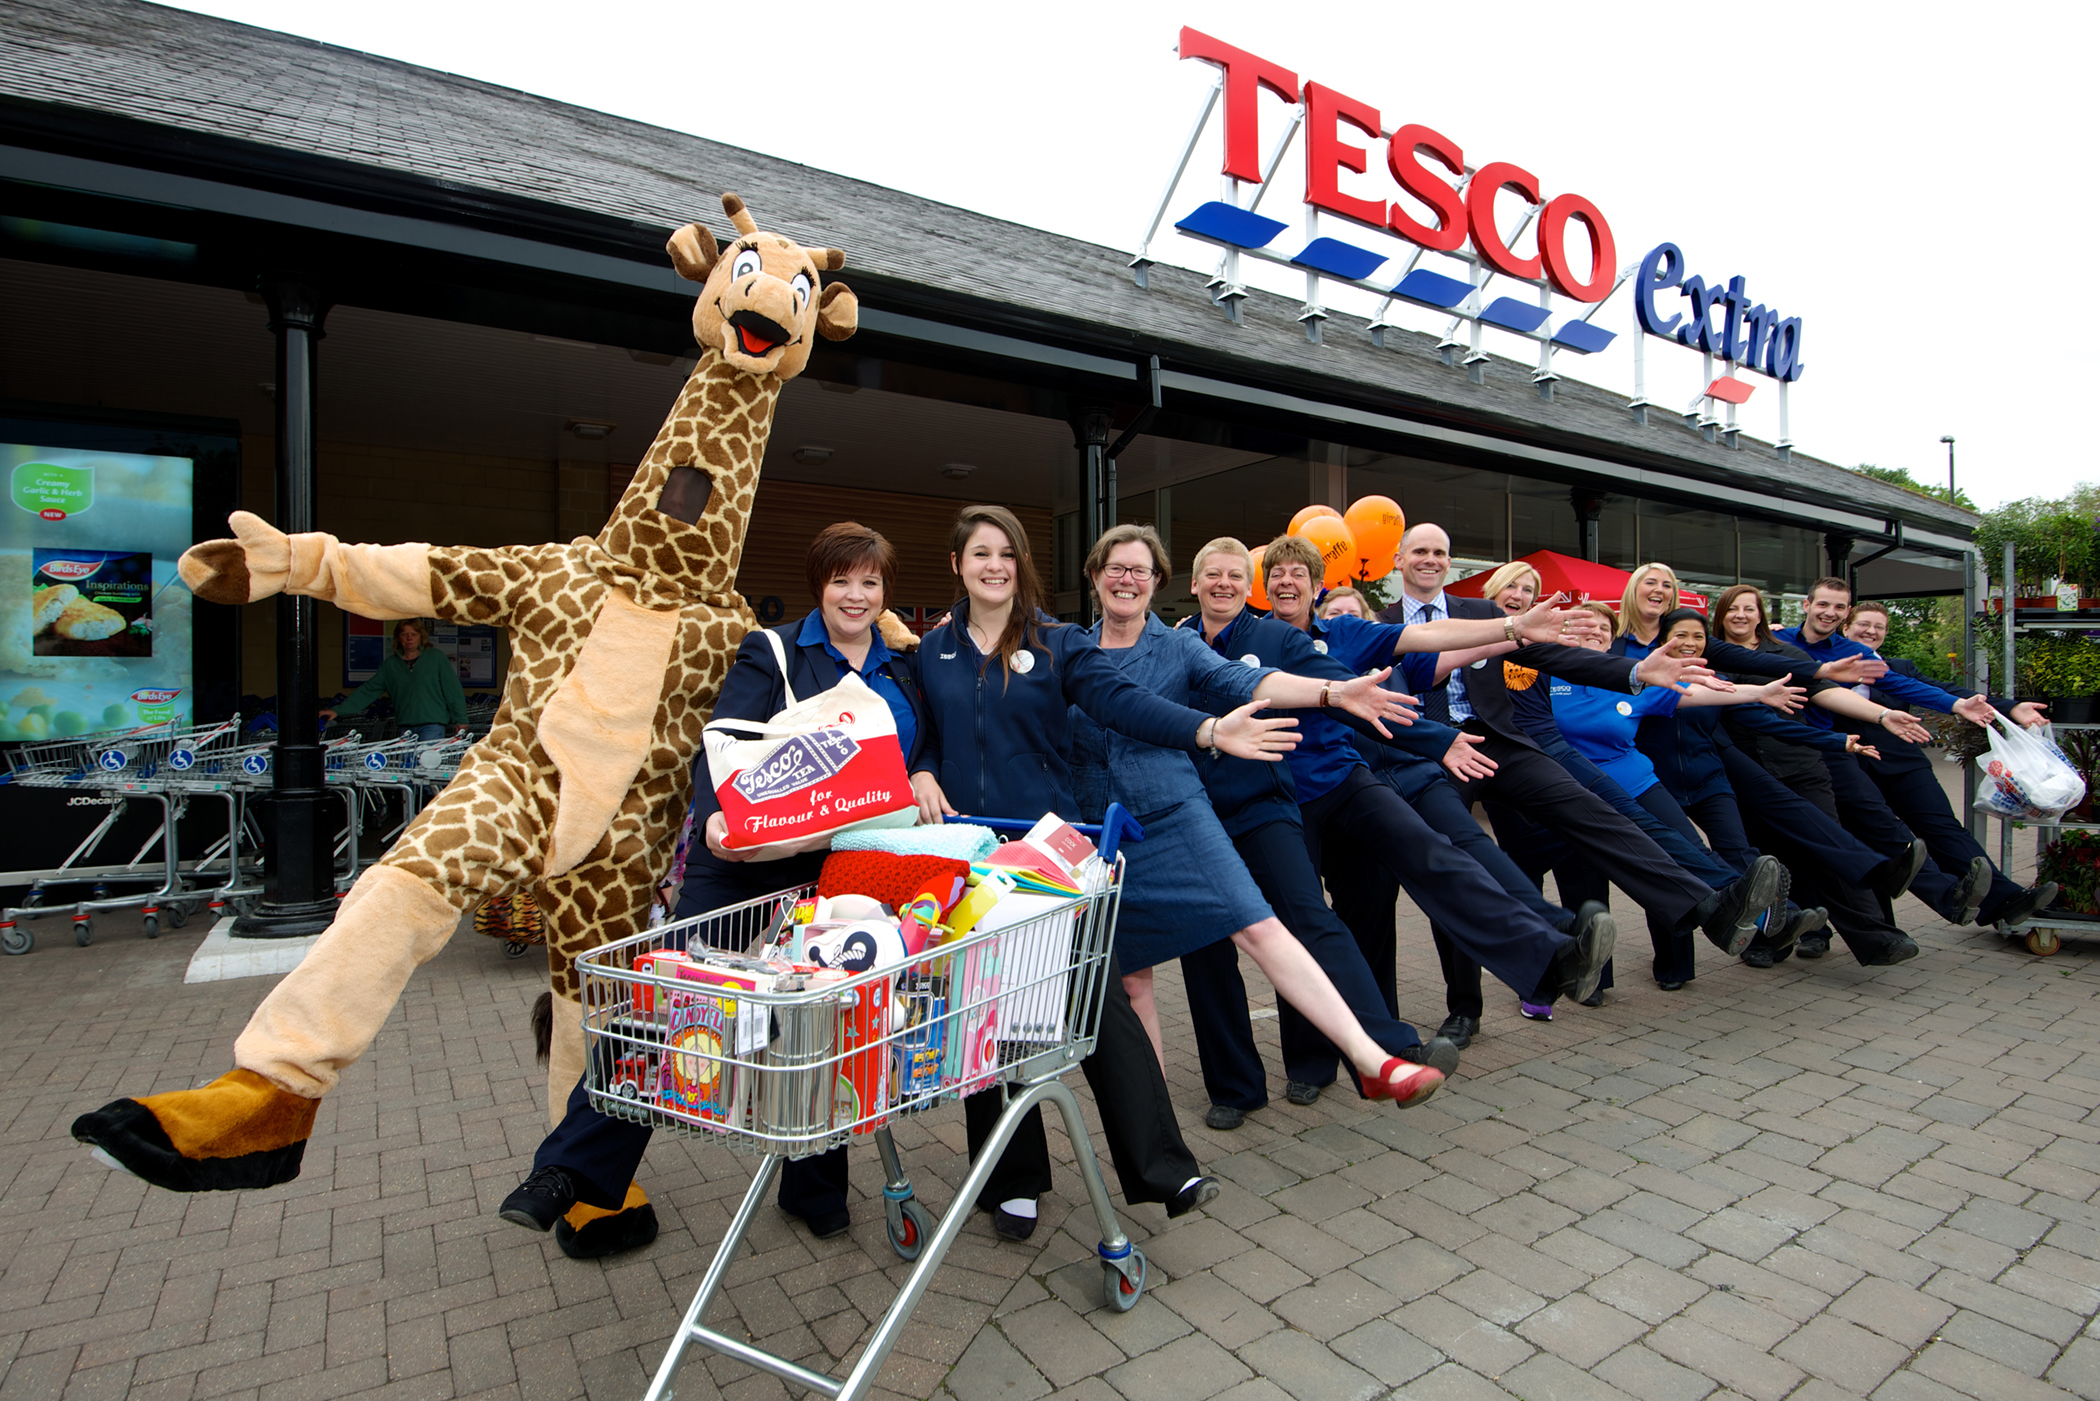 Staff from the store and volunteers from The Churn Project celebrated the re-launch of Tesco Extra last Monday